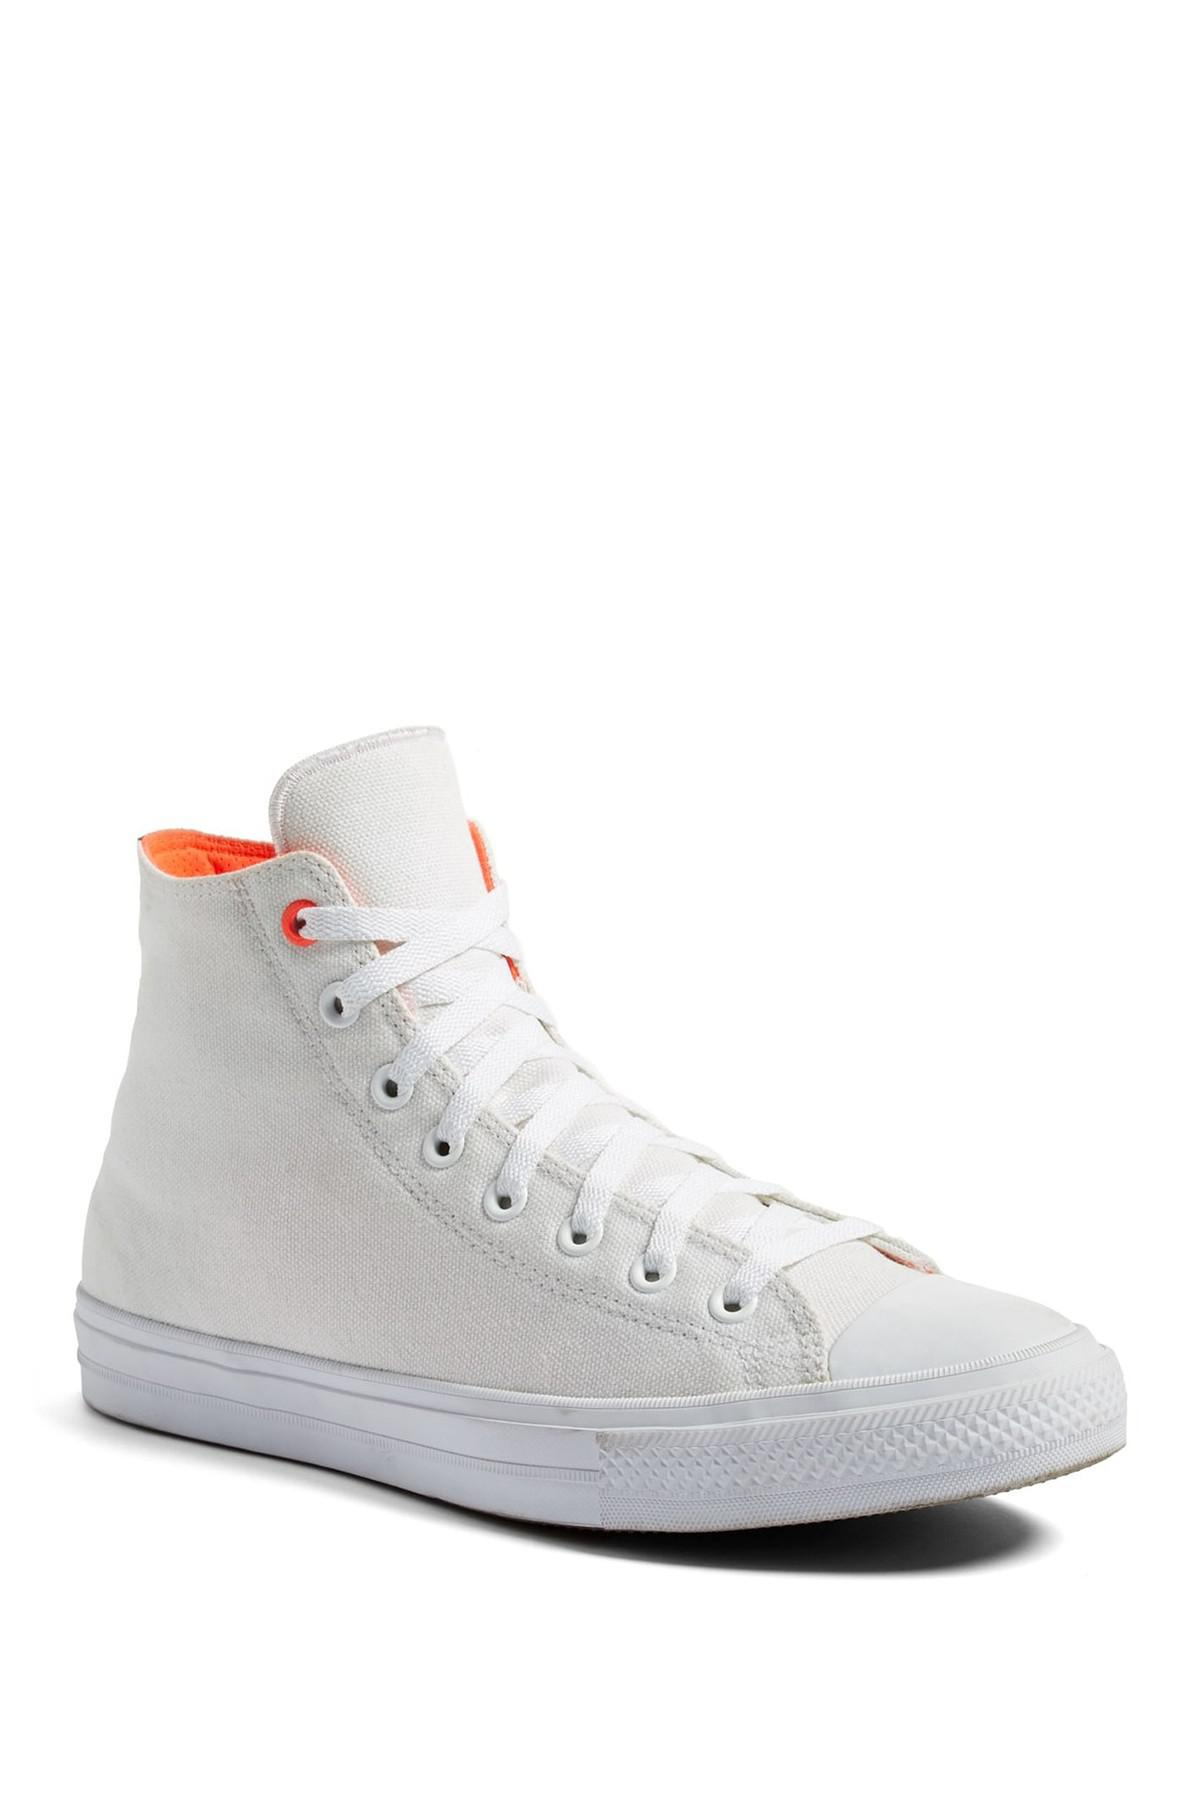 94af74fd9399 Lyst - Converse Chuck Taylor All Star Ii Shield Water Repellent High ...